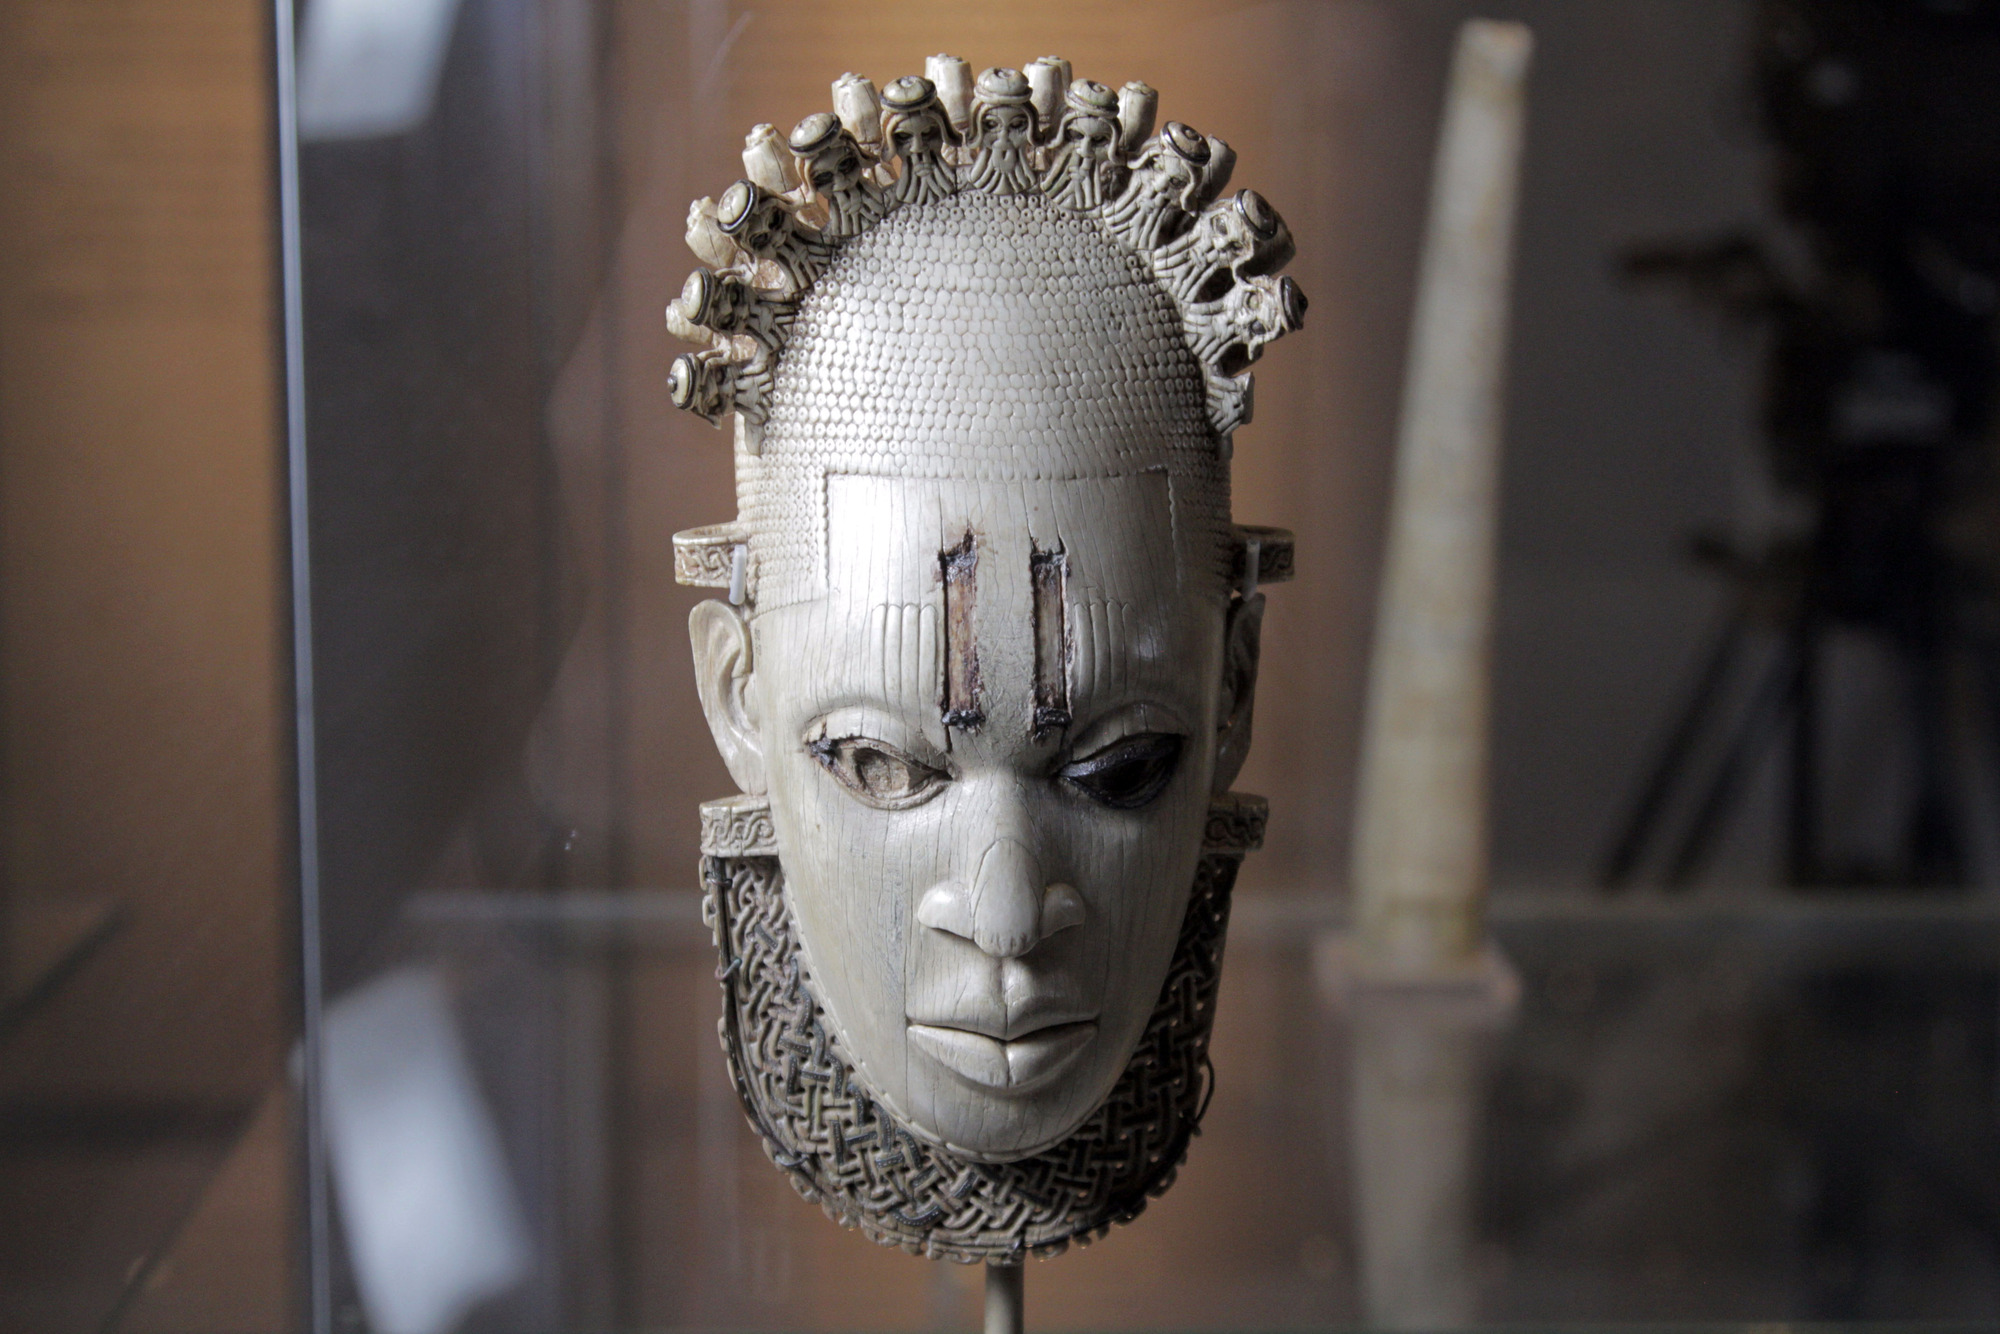 Carved Ivory mask-shaped hip pendant, inlaid with bronze Benin, Queen Idia, Artisit Unknown (16th century) British Museum, London. Photographer: Nutopia